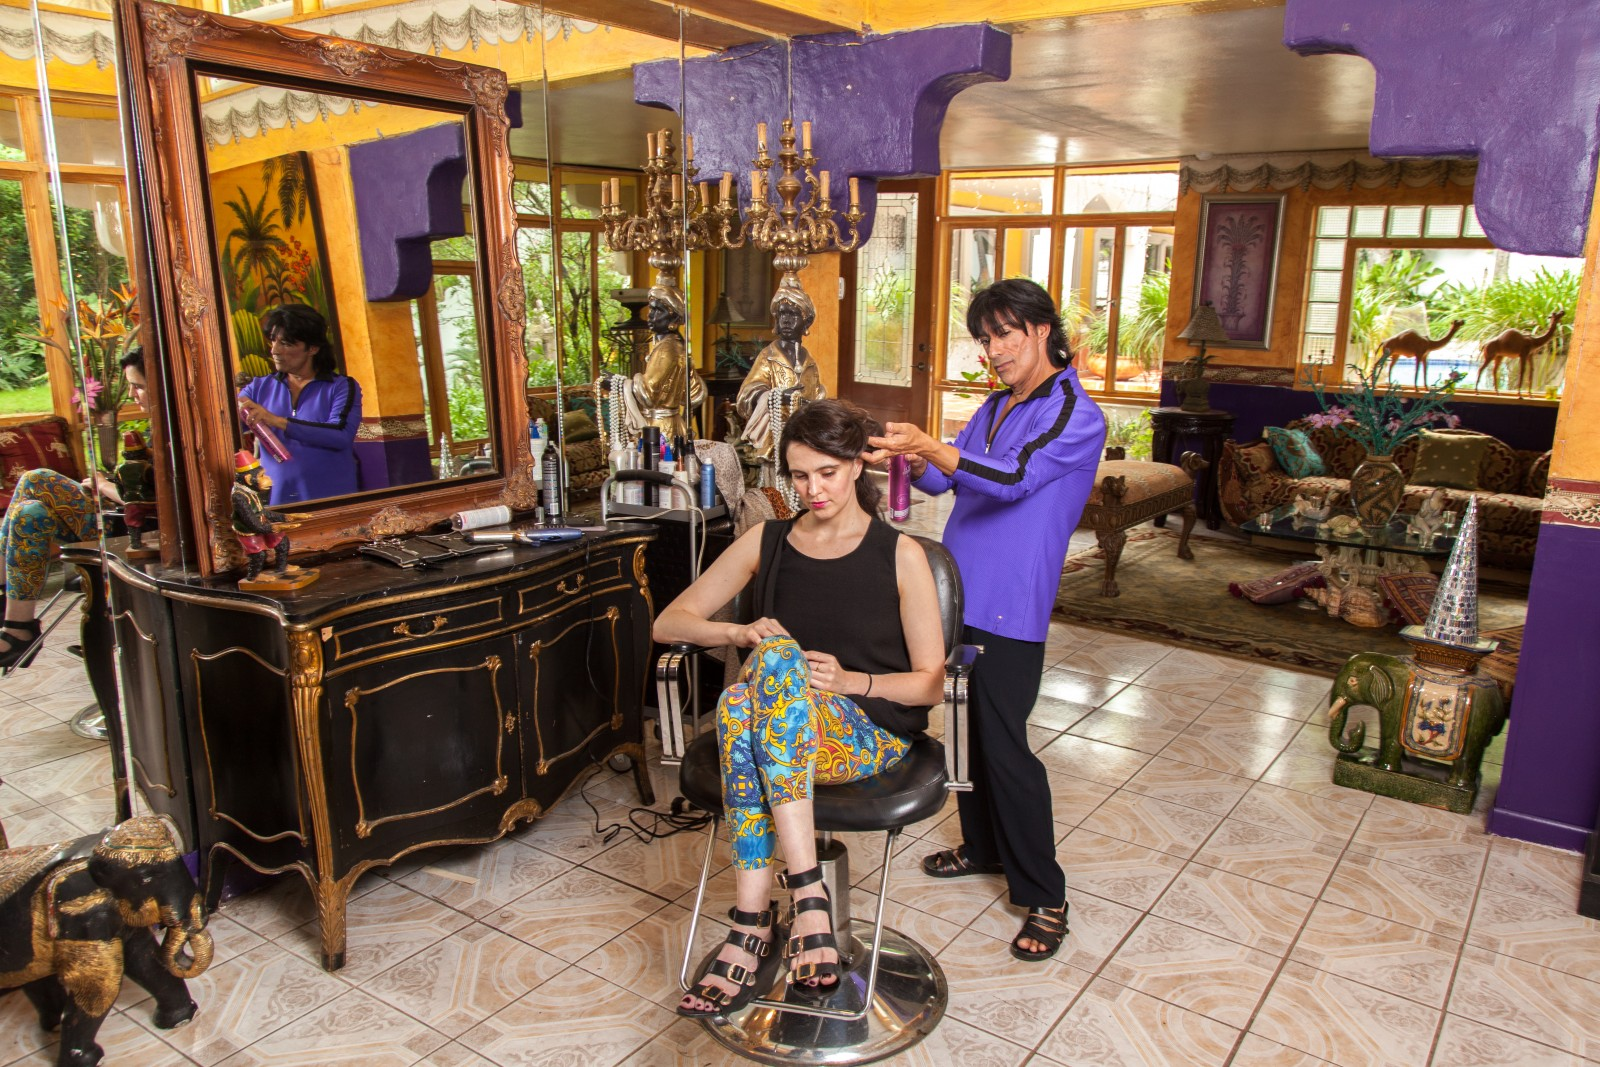 Karlos Anzoategui tends to a client's tresses at Villa Sol